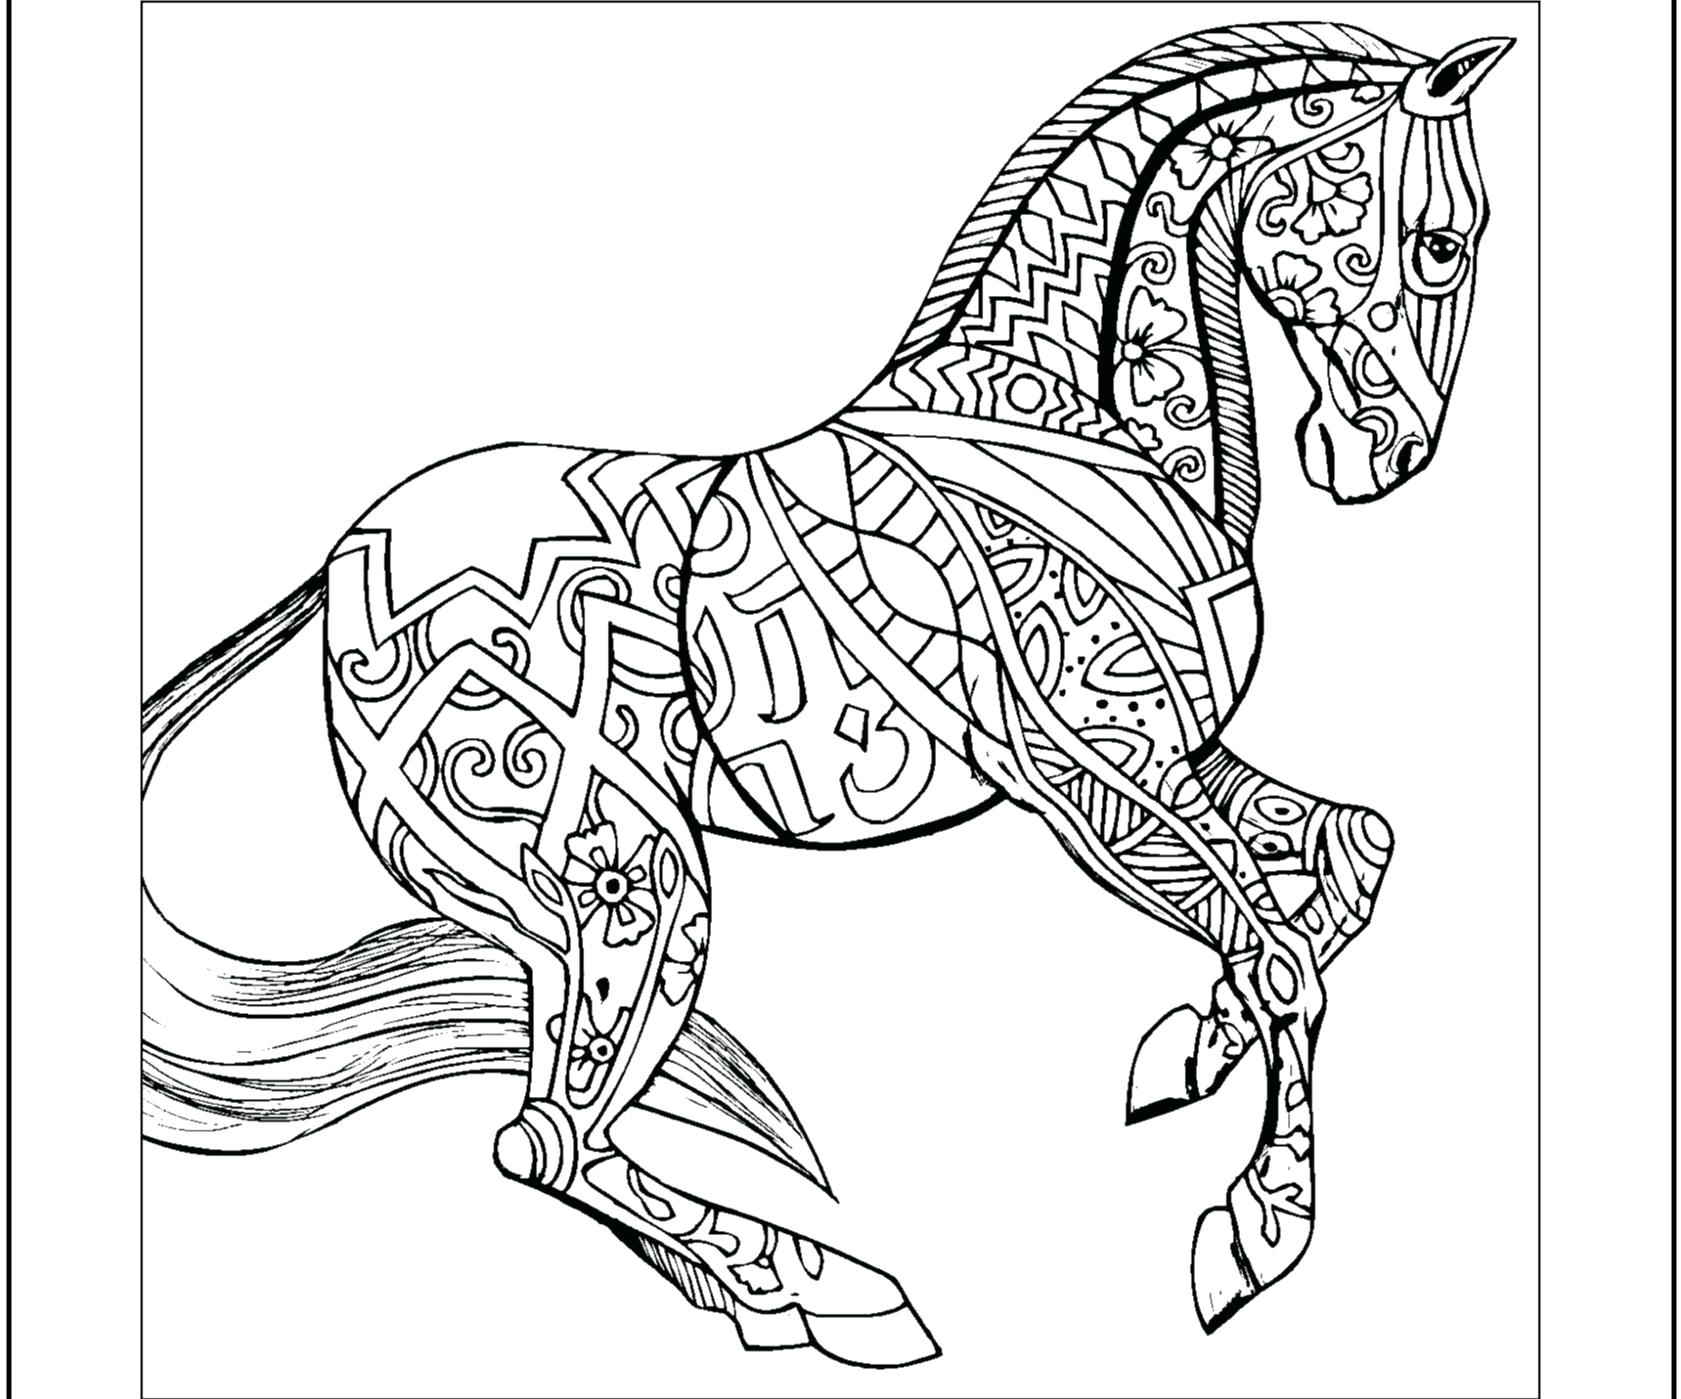 Draft Horse Coloring Pages - Coloring Home